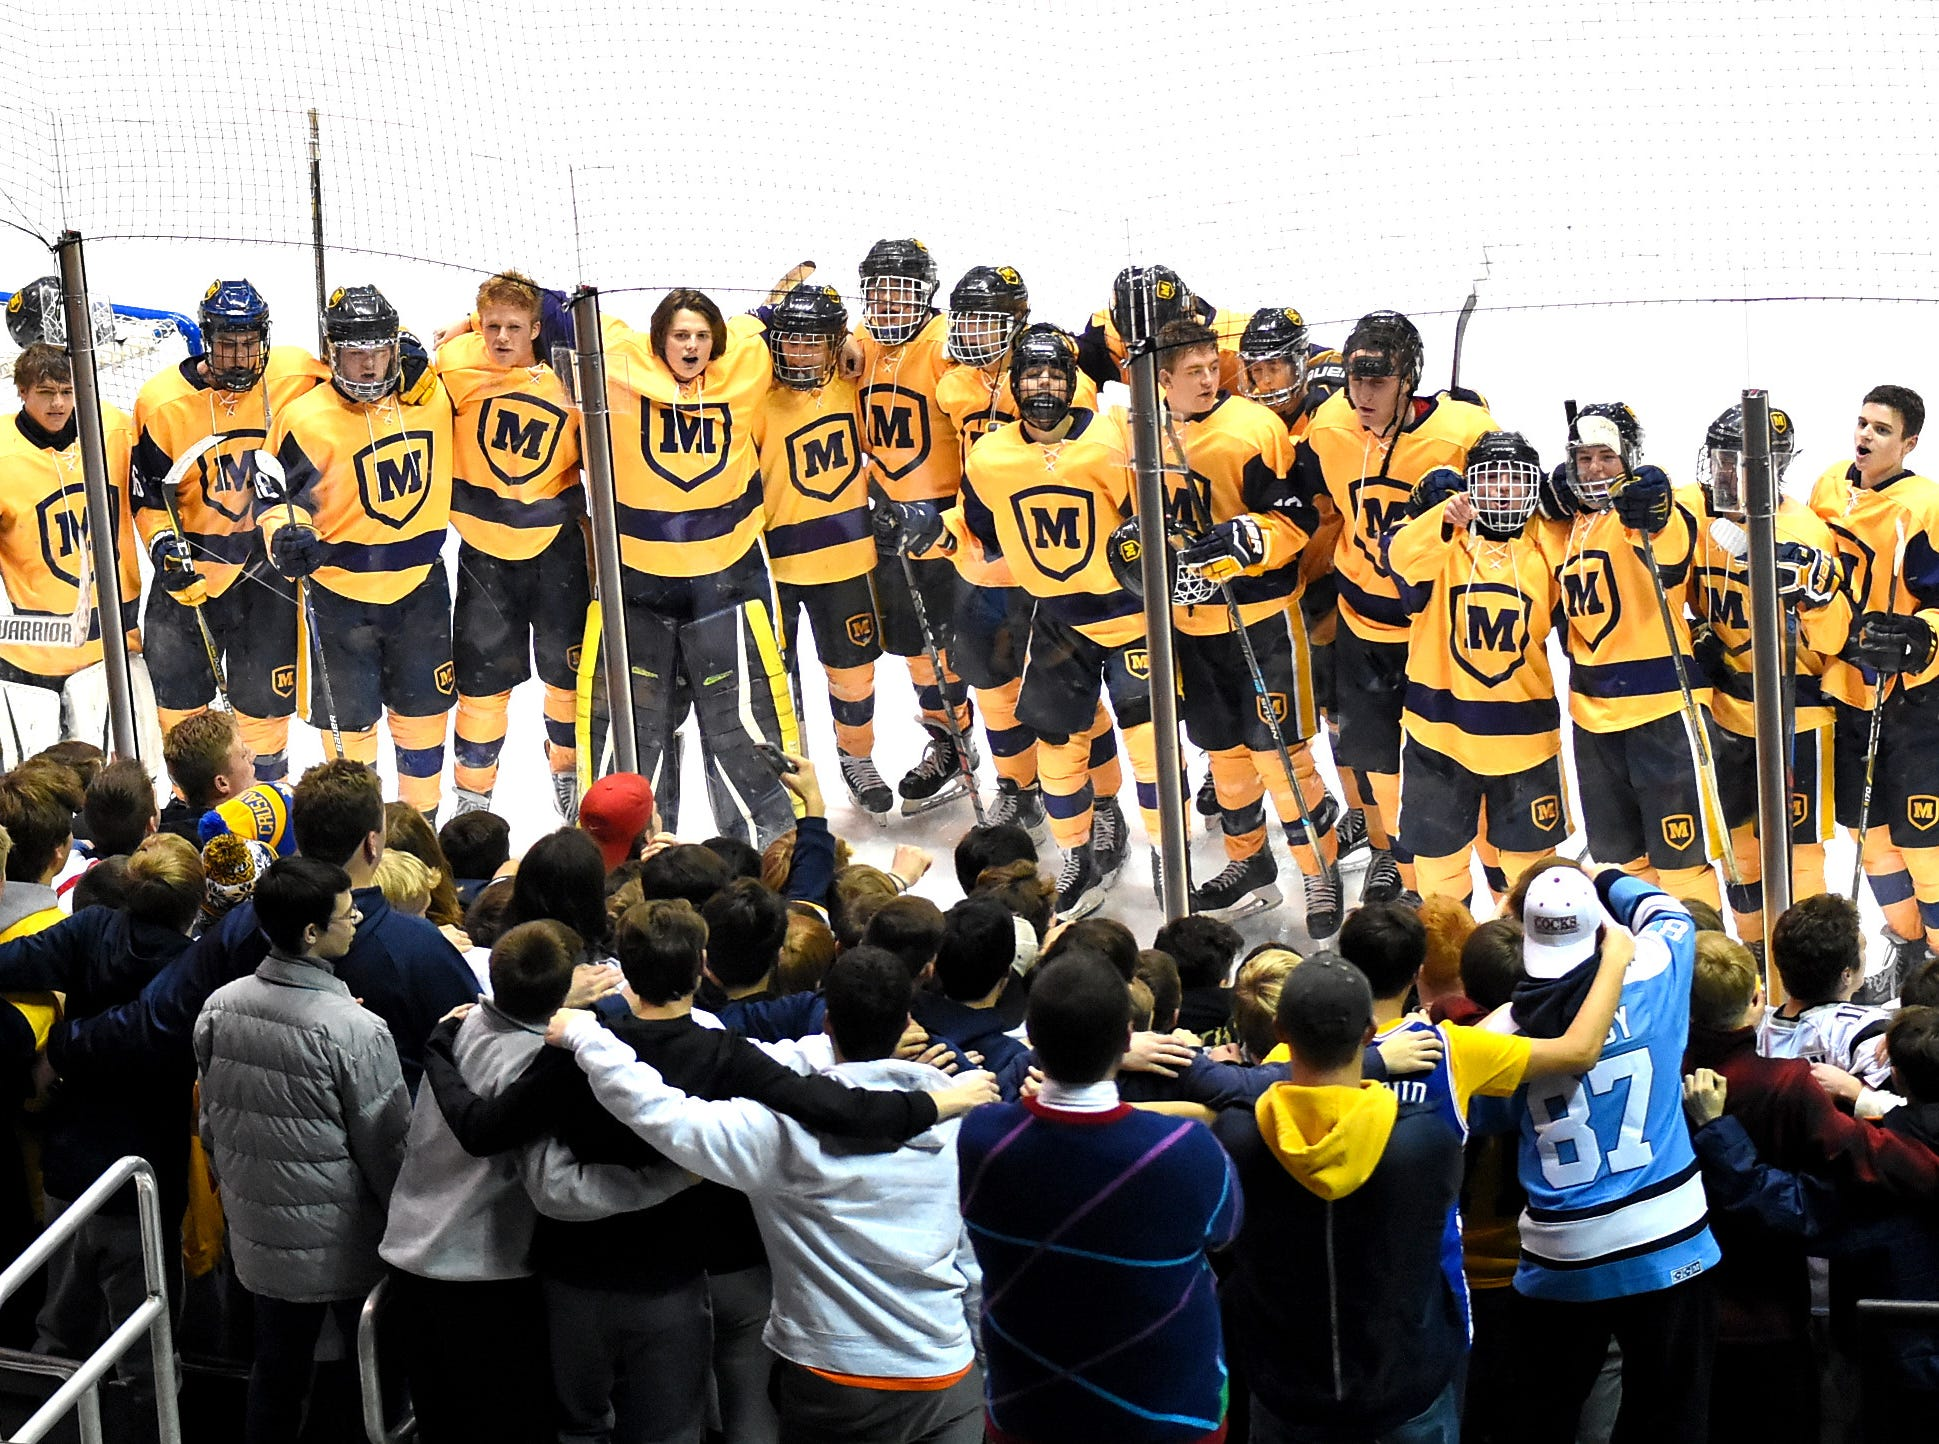 The Moeller student body and Ice Hockey Crusaders sing with joy after their 3-2 win over St. Xavier at US Bank Arena, December 7, 2018.